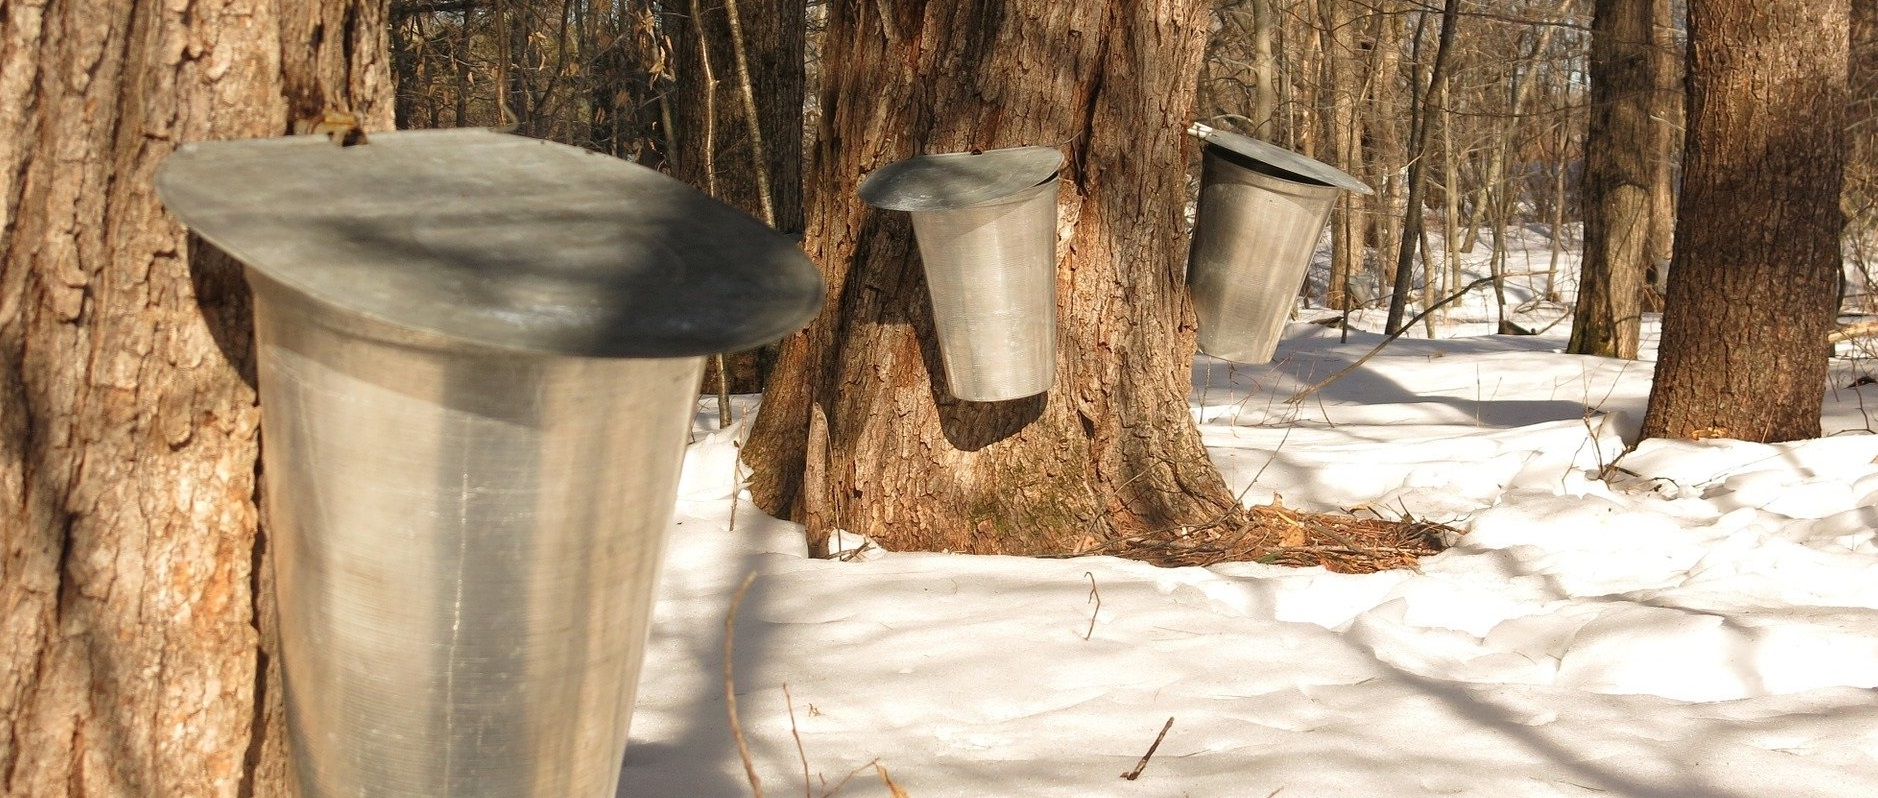 tin buckets capture sap from maple trees to make maple syrup